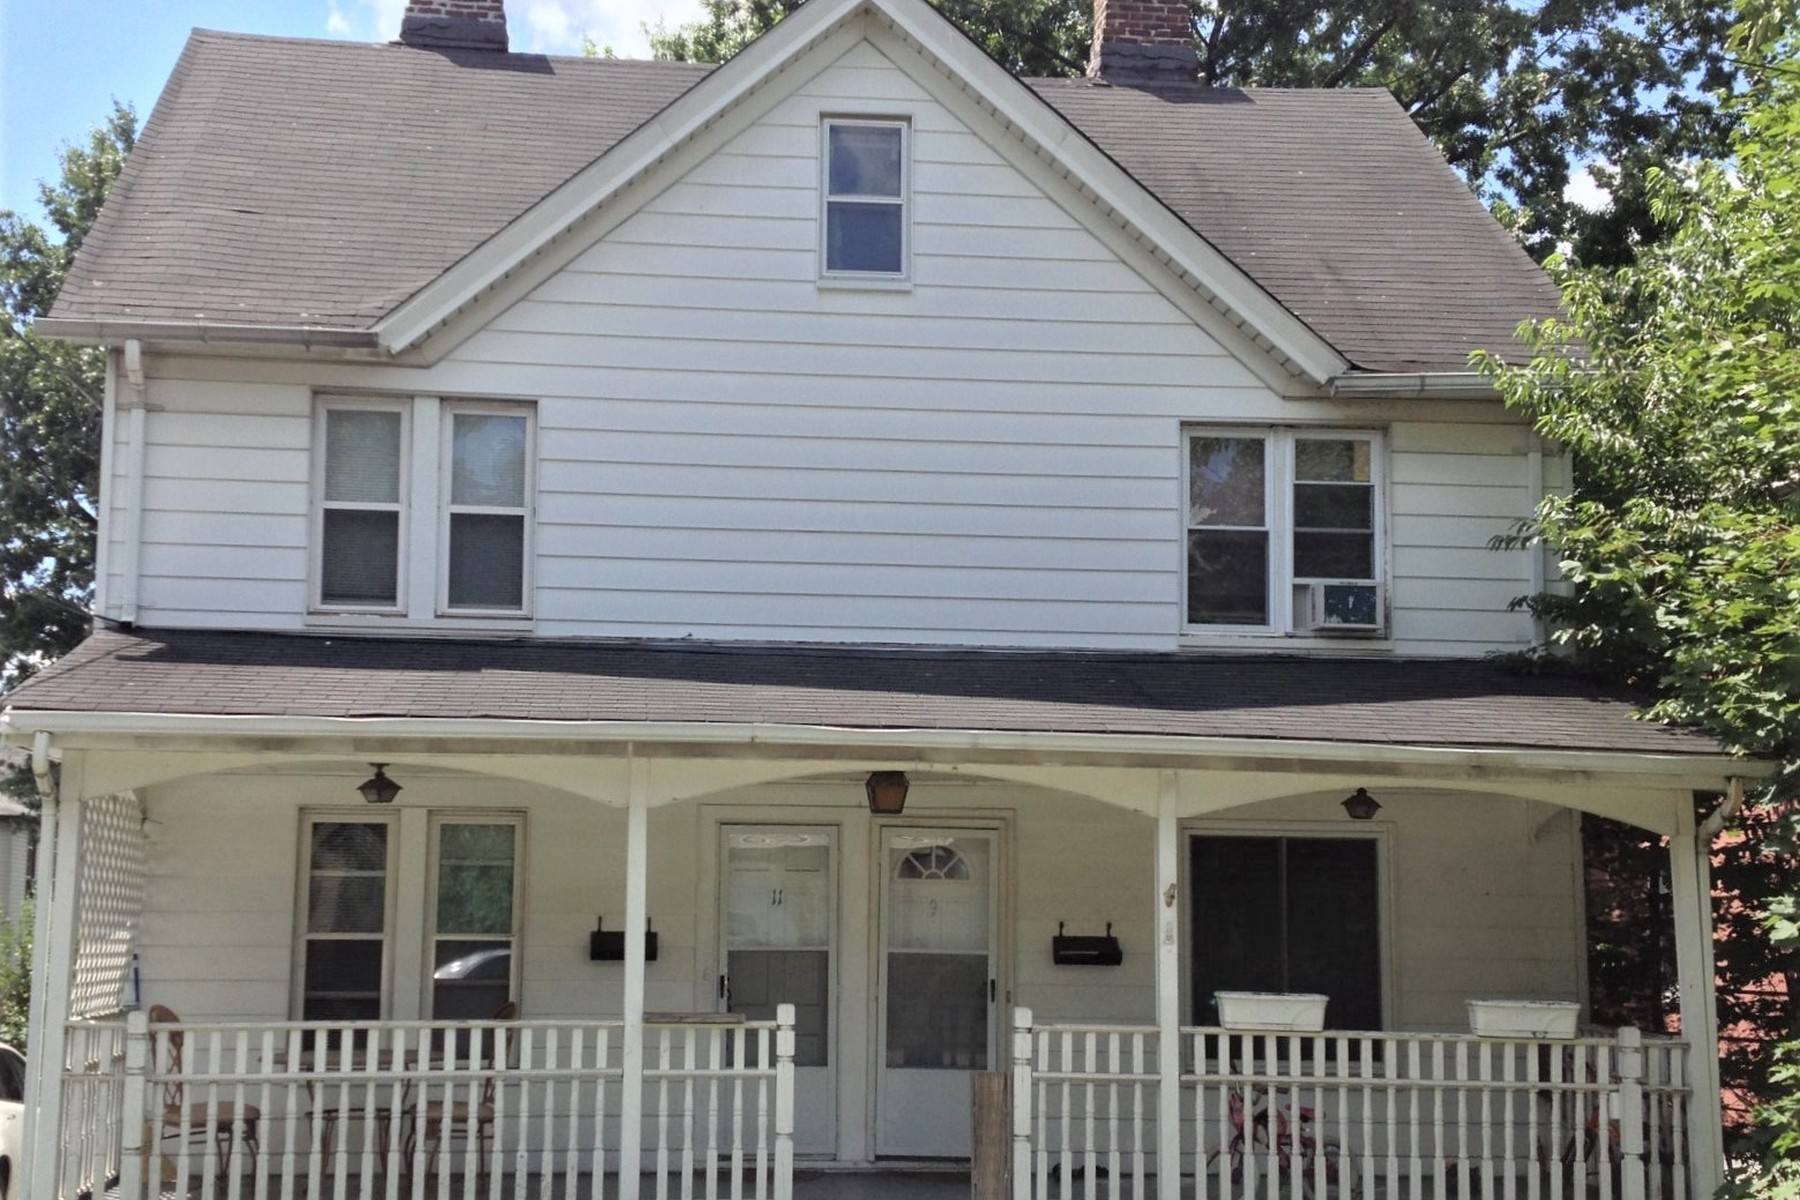 Multi-Family Home for Rent at 9-11 Orchard Street 9-11 Orchard Street Ridgefield Park, New Jersey 07650 United States